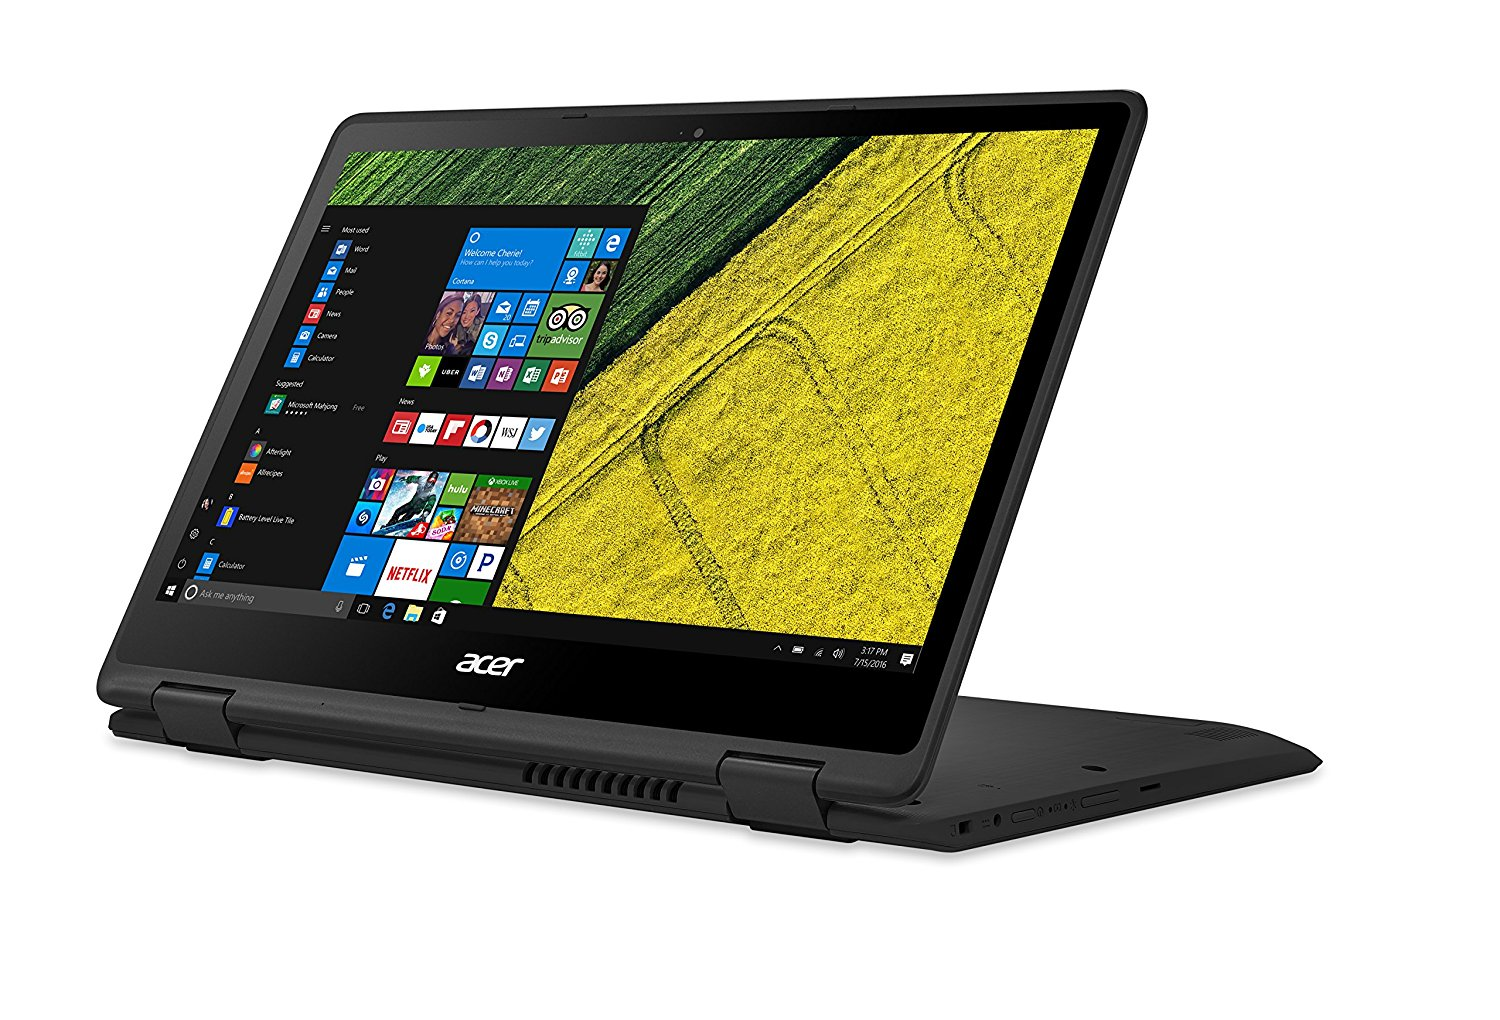 Acer Spin 5 Core 2 in 1 Laptop